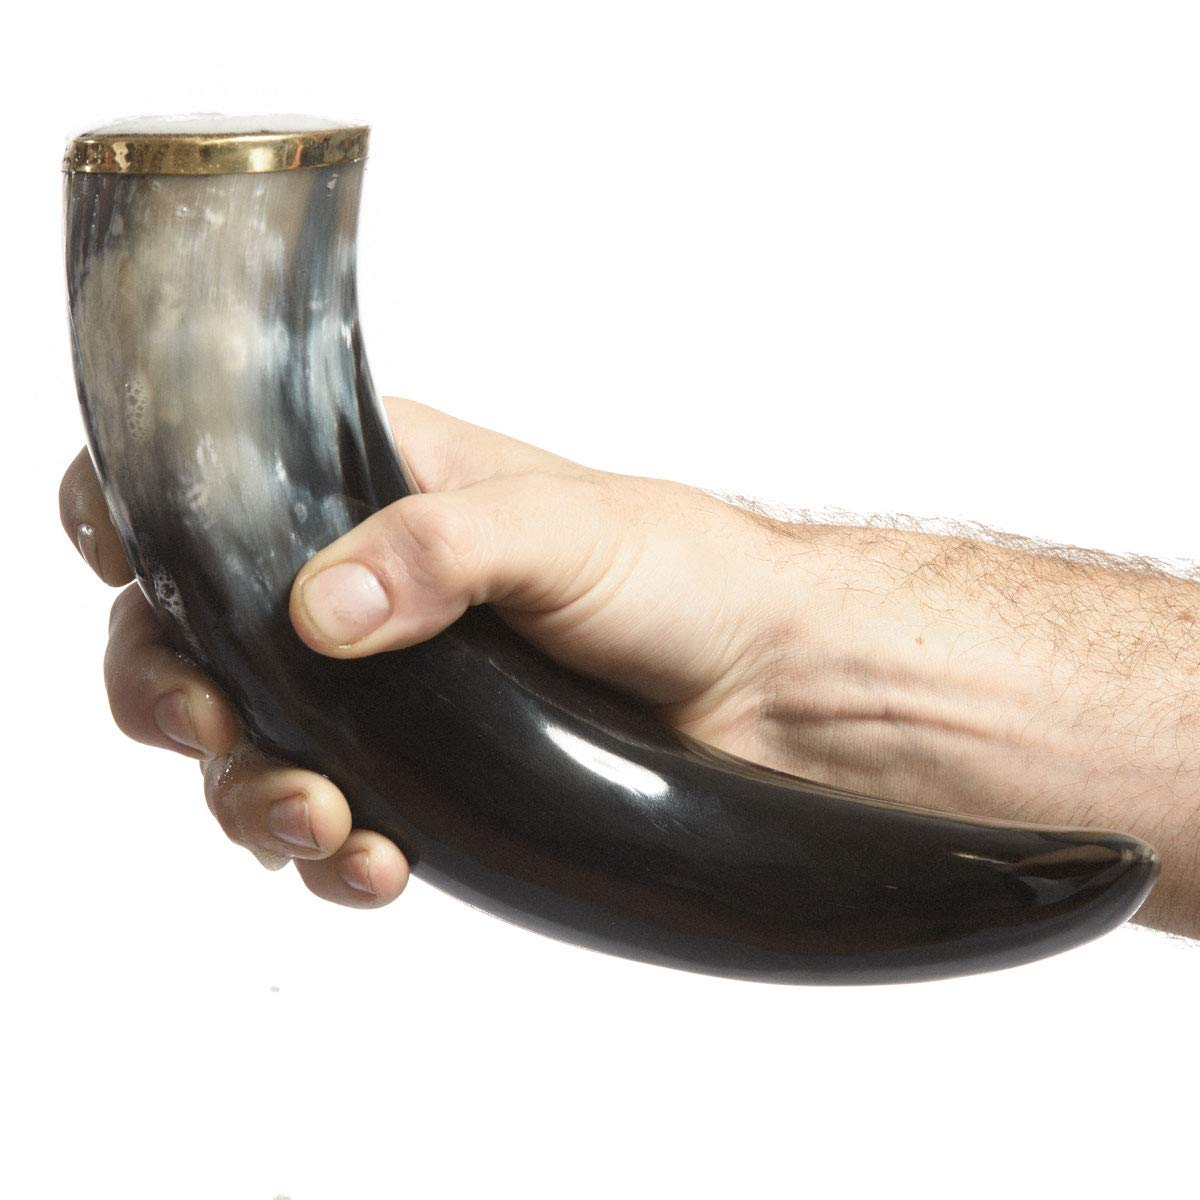 AleHorn – The Original Handcrafted Authentic Viking Drinking Horn for Beer, Mead, Ale – Medieval Inspired – Food Safe Vessel - Curved Style with Stand (20'' 4PK, Polished Horn) by AleHorn (Image #4)